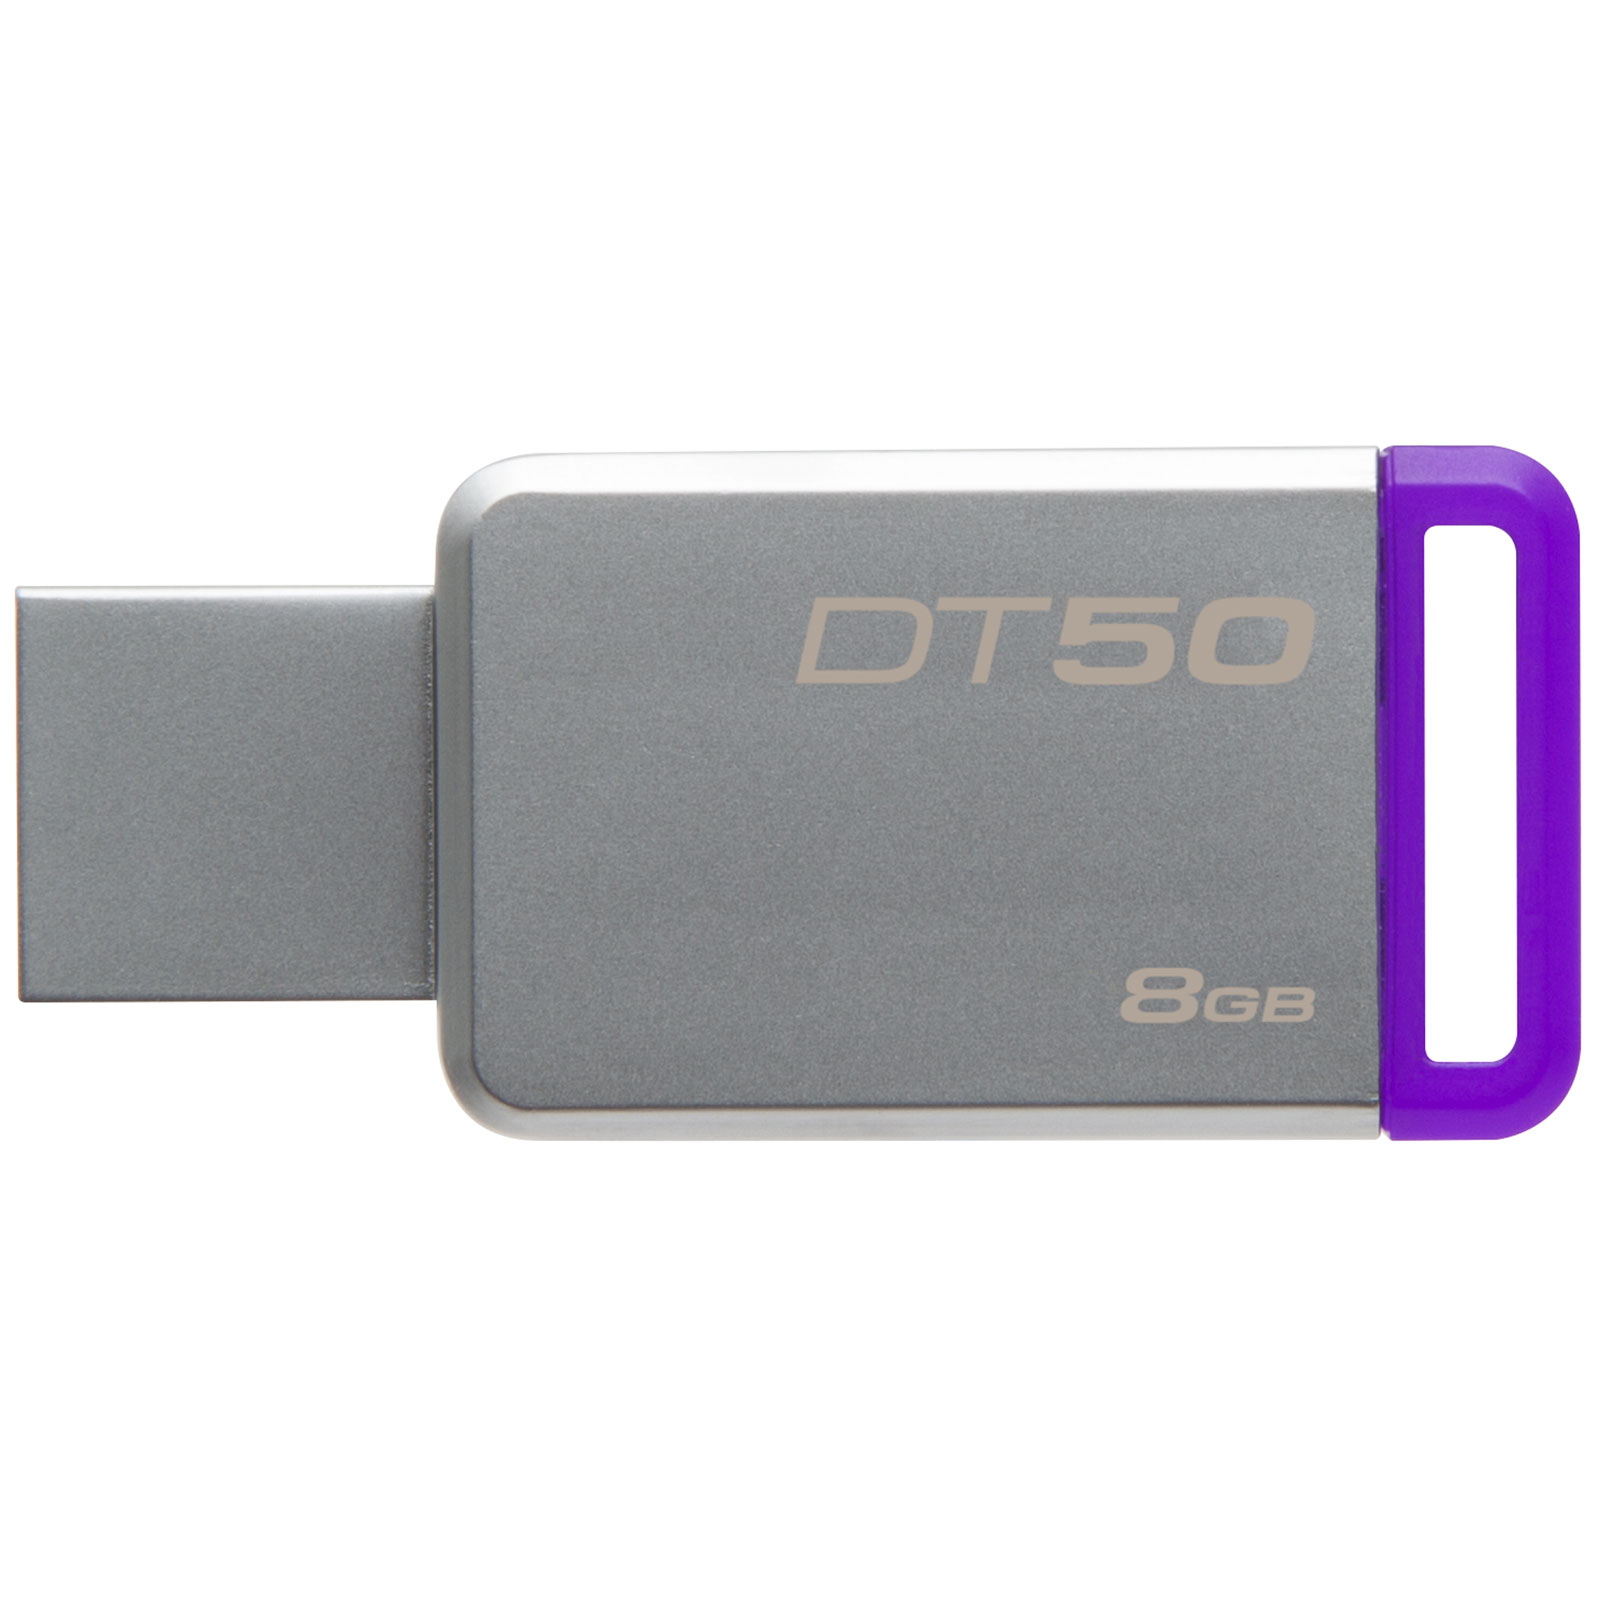 Kingston 8Go USB 3.1 - Clé USB Kingston - Cybertek.fr - 1